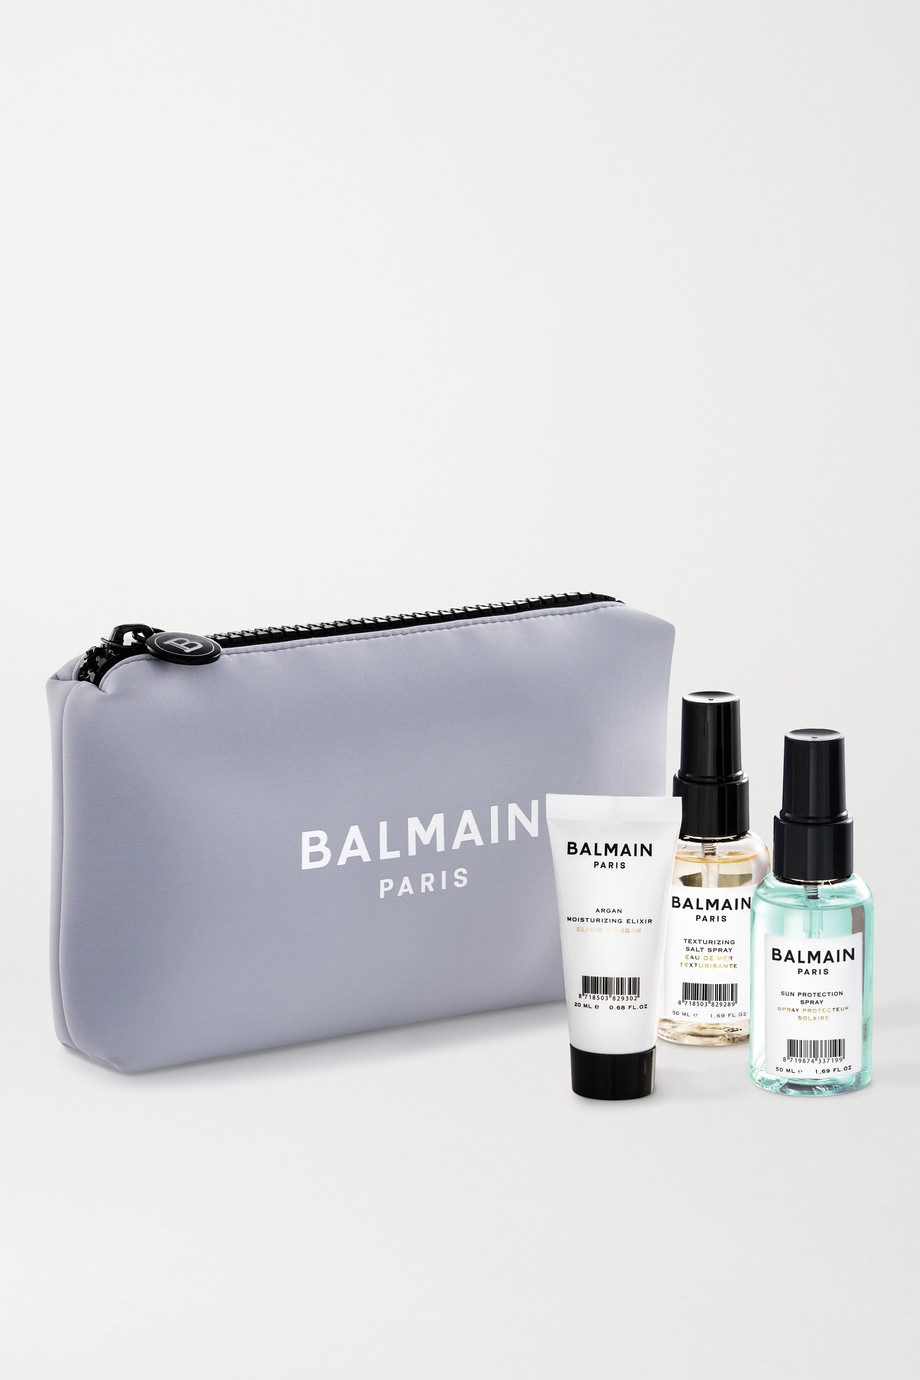 Balmain Paris Hair Couture Spring 2020 Gift Set